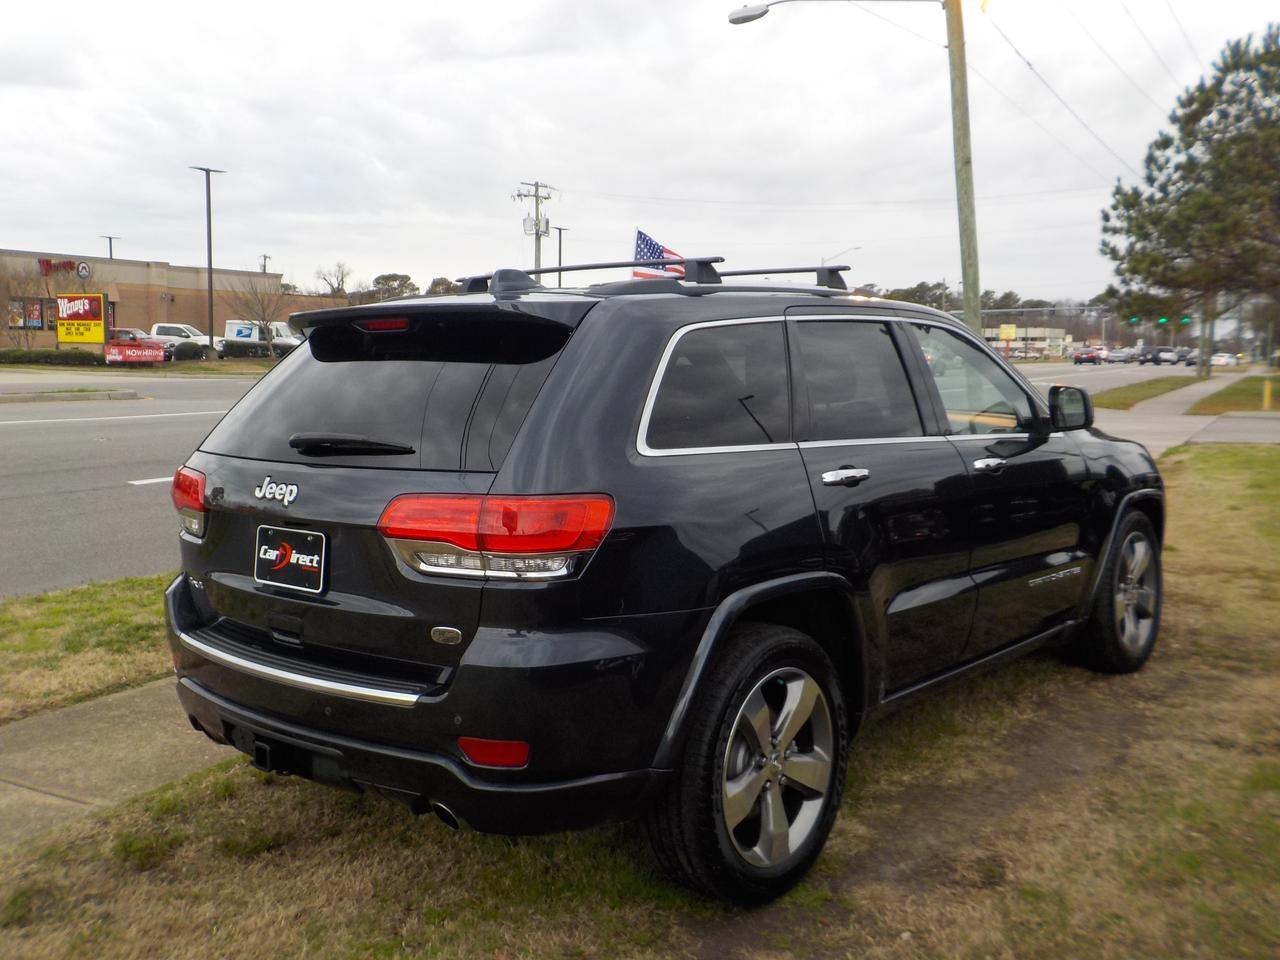 2014 JEEP GRAND CHEROKEE OVERLAND 4X4, WARRANTY, NAVIGATION, PANO ROOF, REMOTE START, PARKING SENSORS, BACKUP CAMERA! Virginia Beach VA